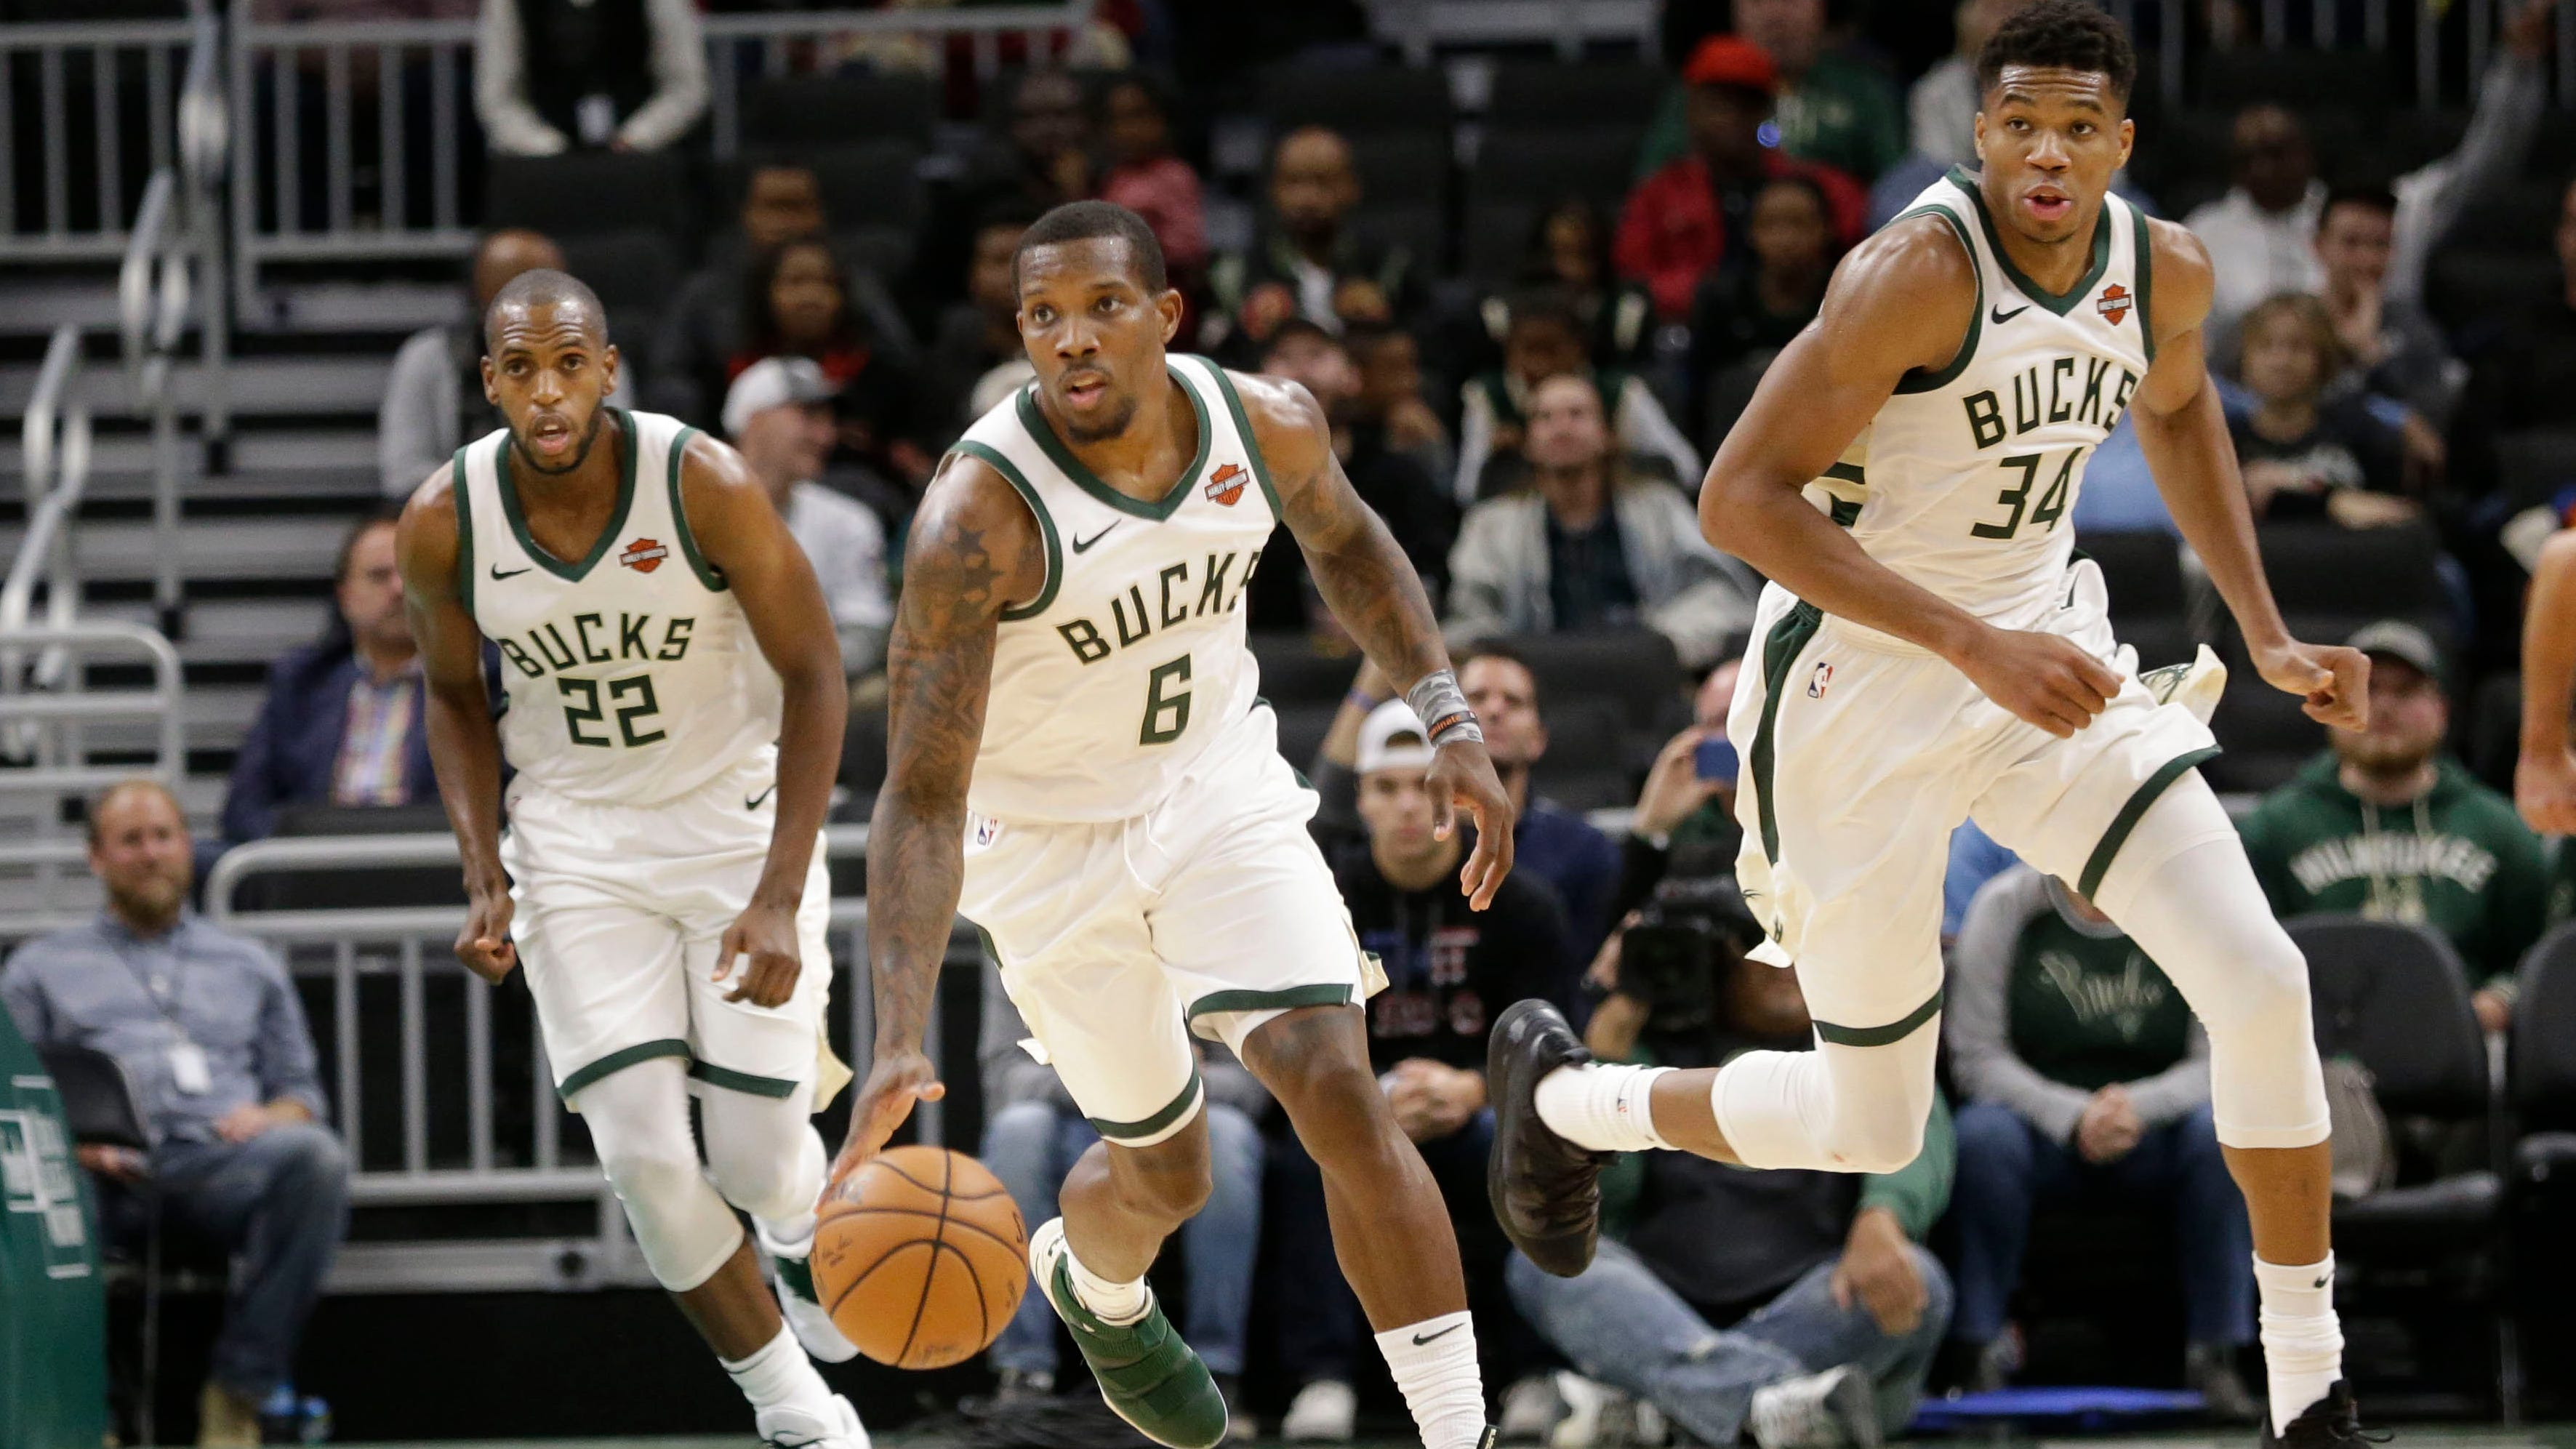 Eb52d443-0139-40ab-87cd-abe922f4f607-ap_timberwolves_bucks_basketball.1